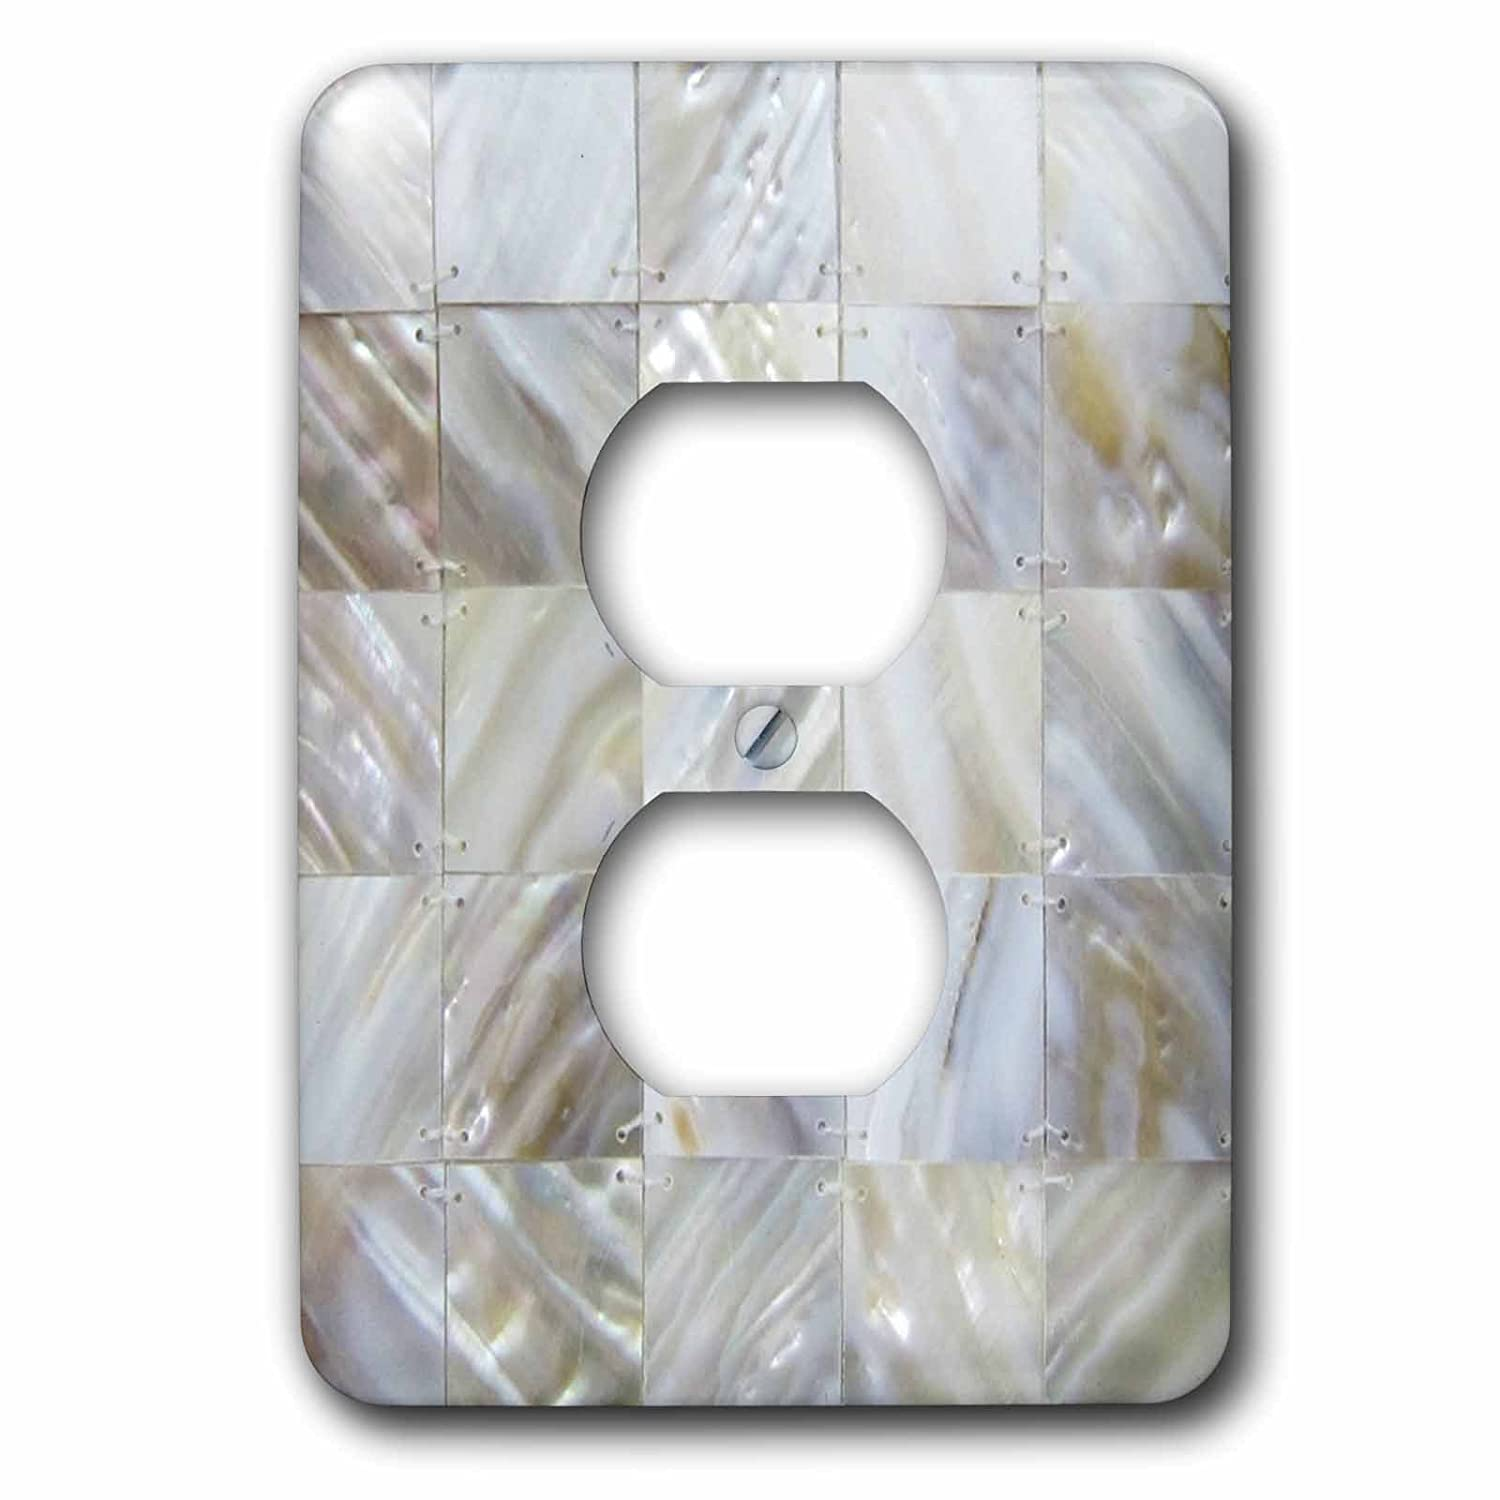 3dRose lsp/_50911/_6 Picturing Mother Of Pearl Outlet Cover